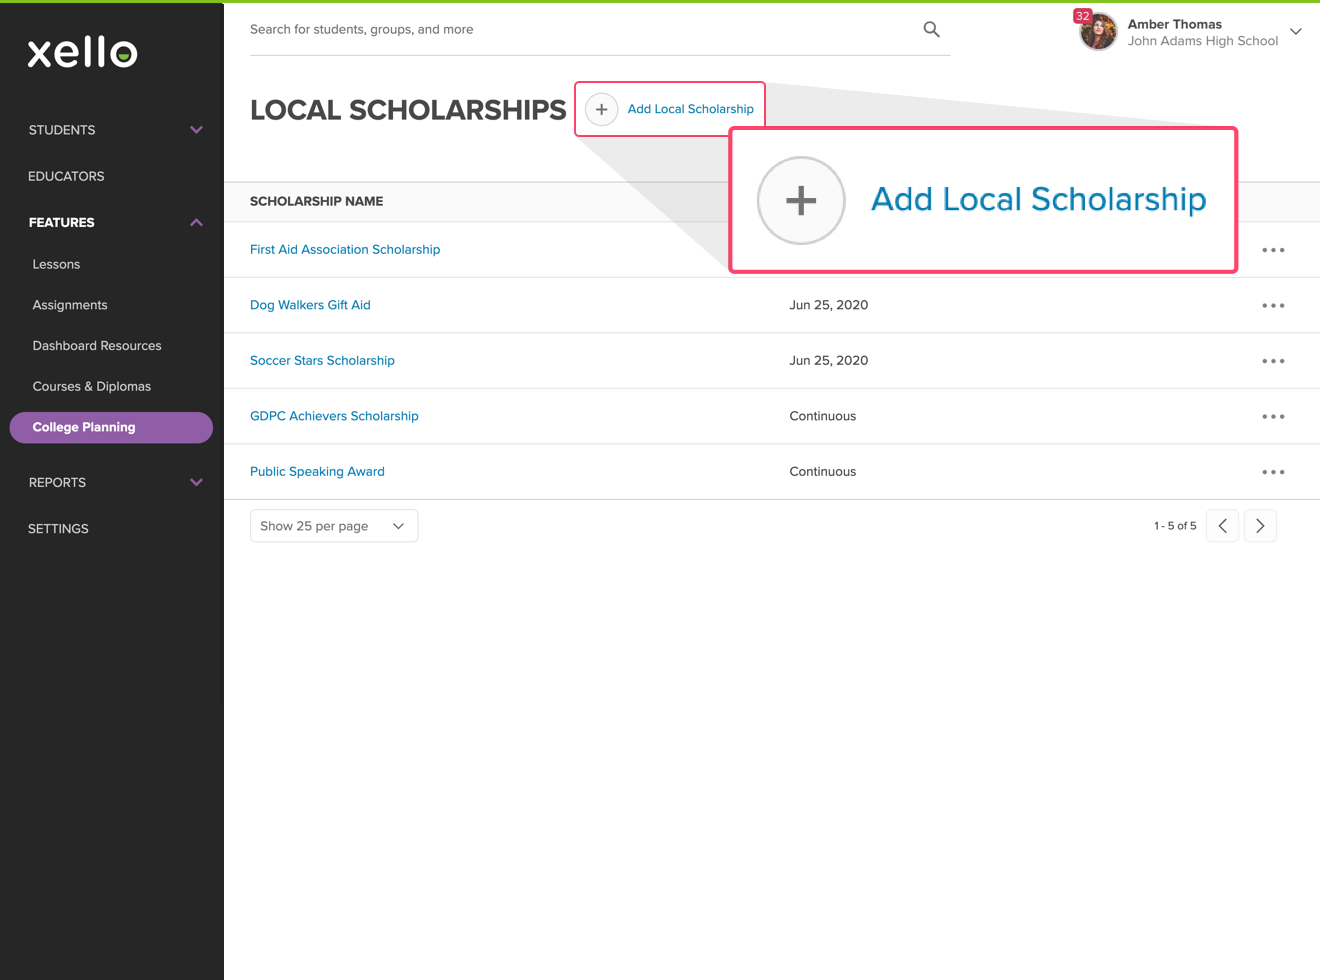 Add local scholarships